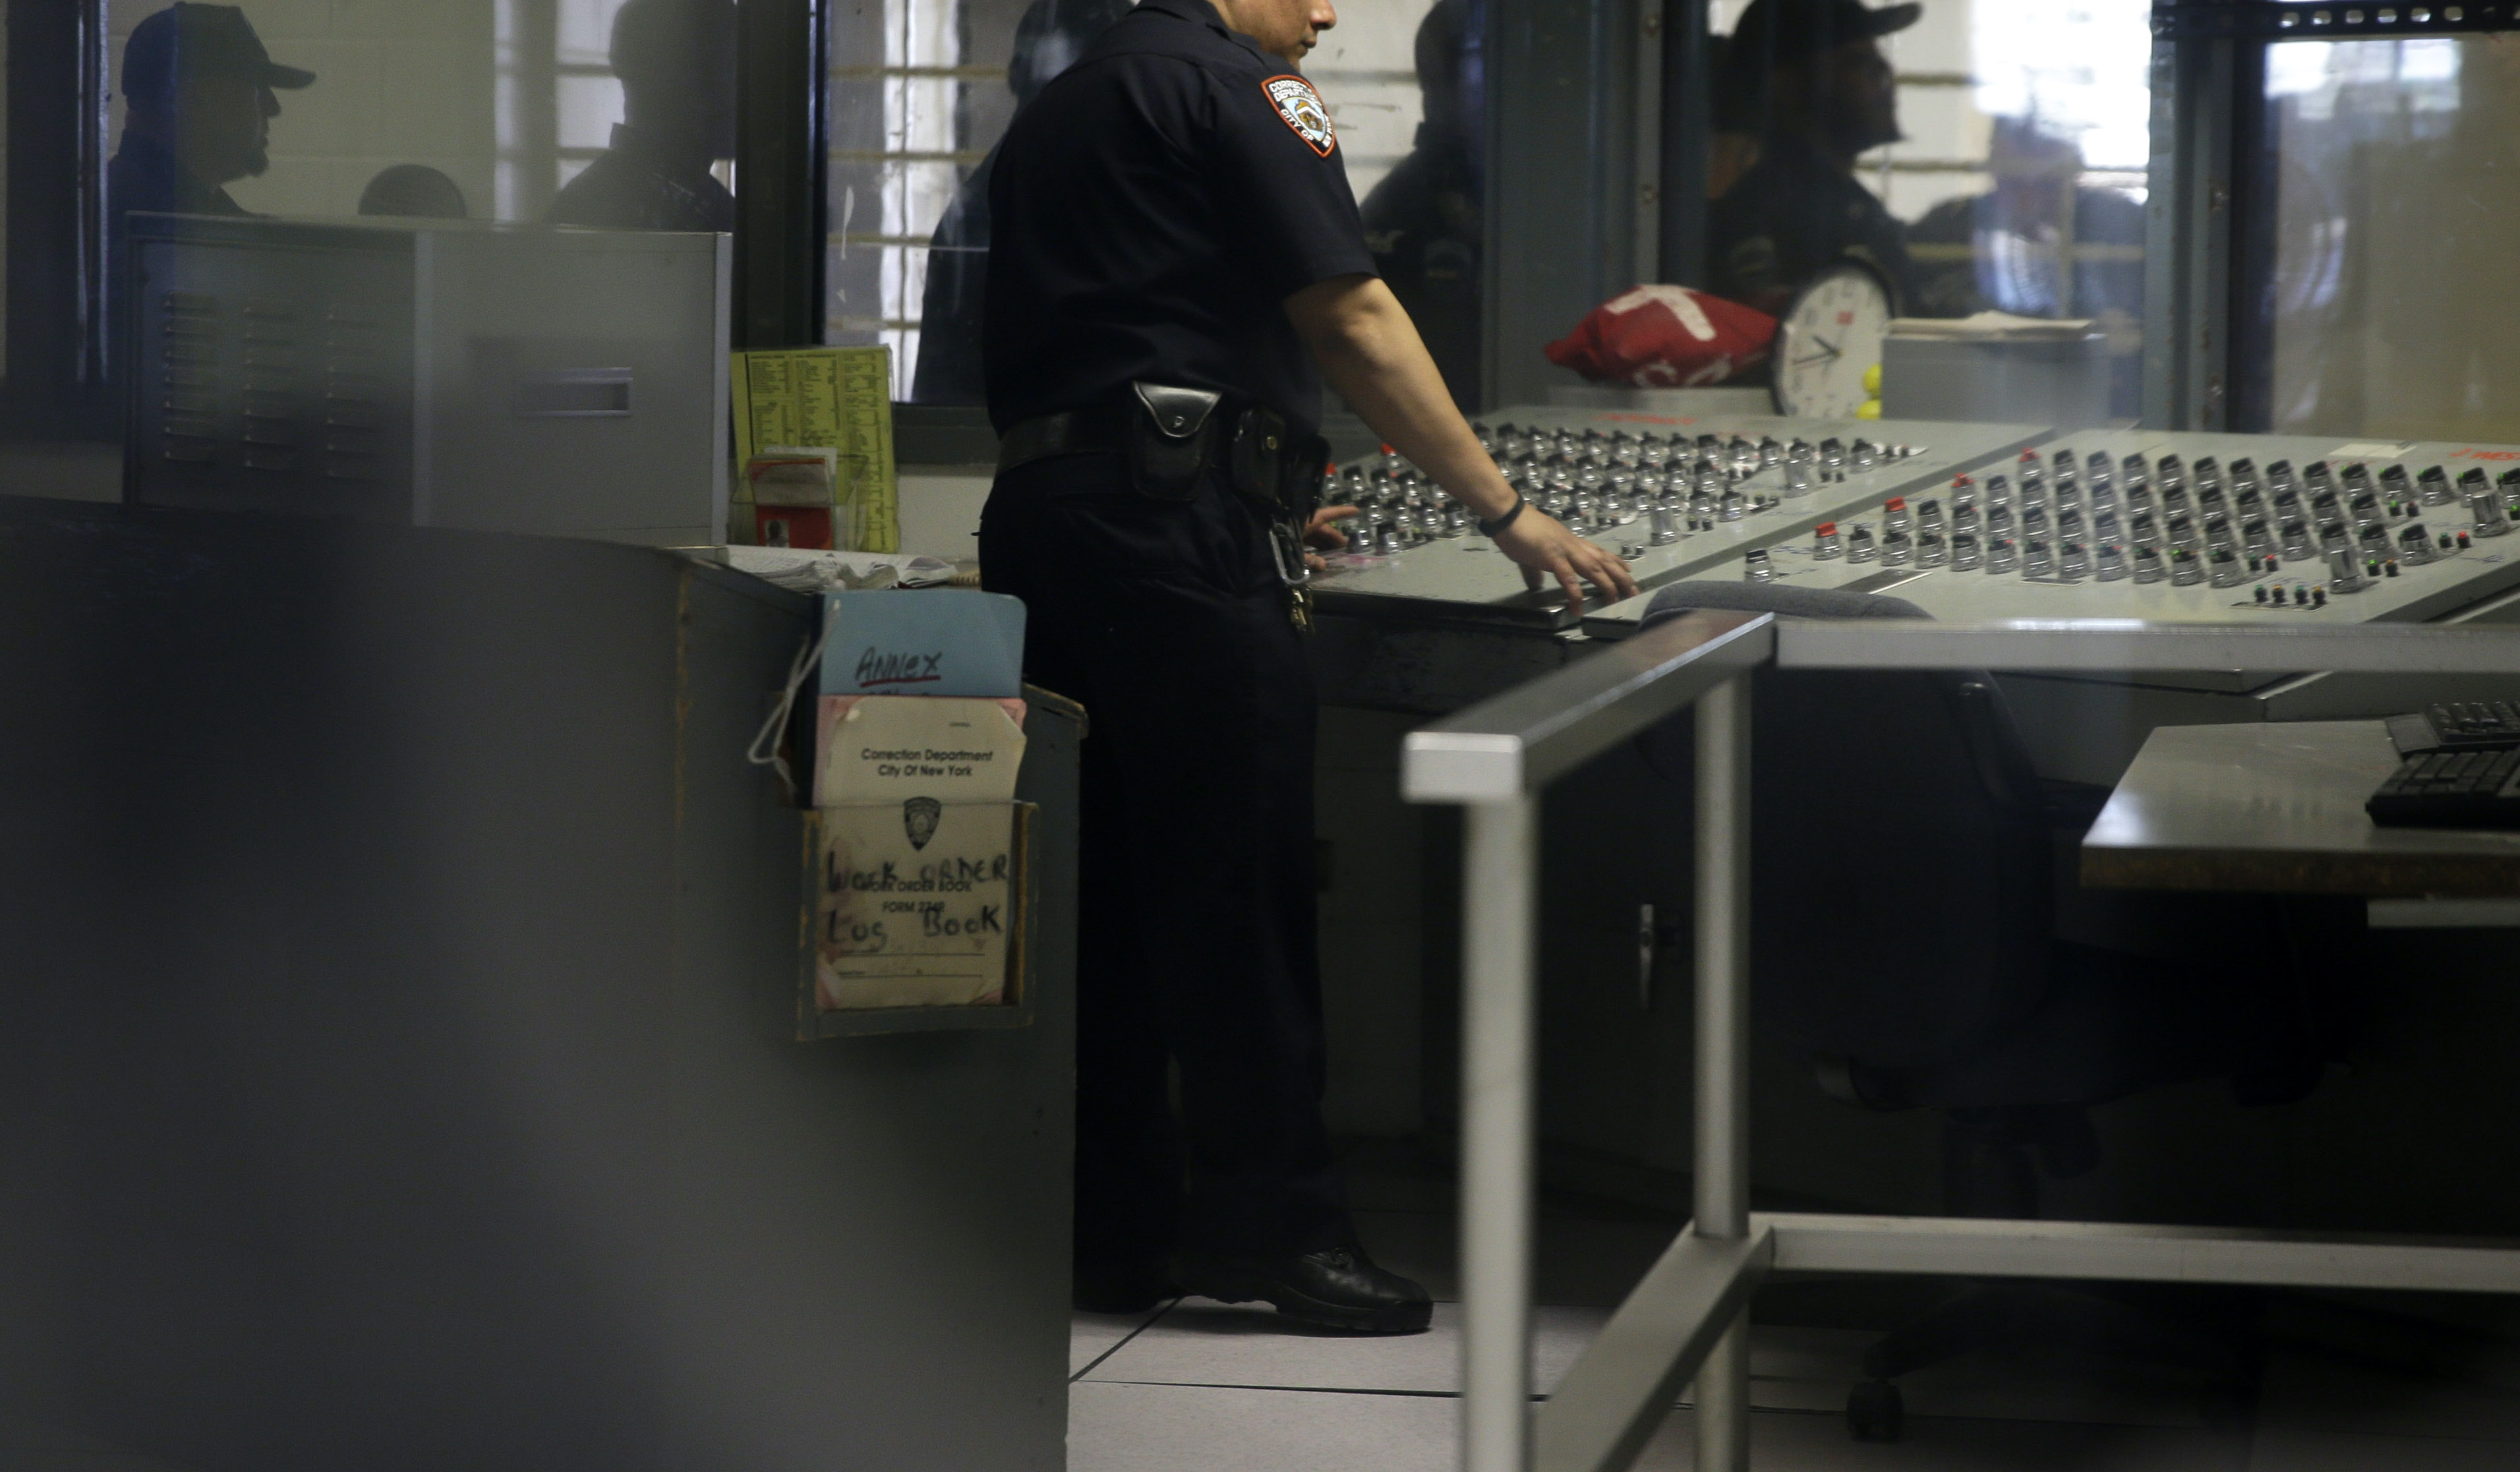 A corrections officer mans a security post on March 12, 2015 in an enhanced supervision housing unit on Rikers Island in New York City.